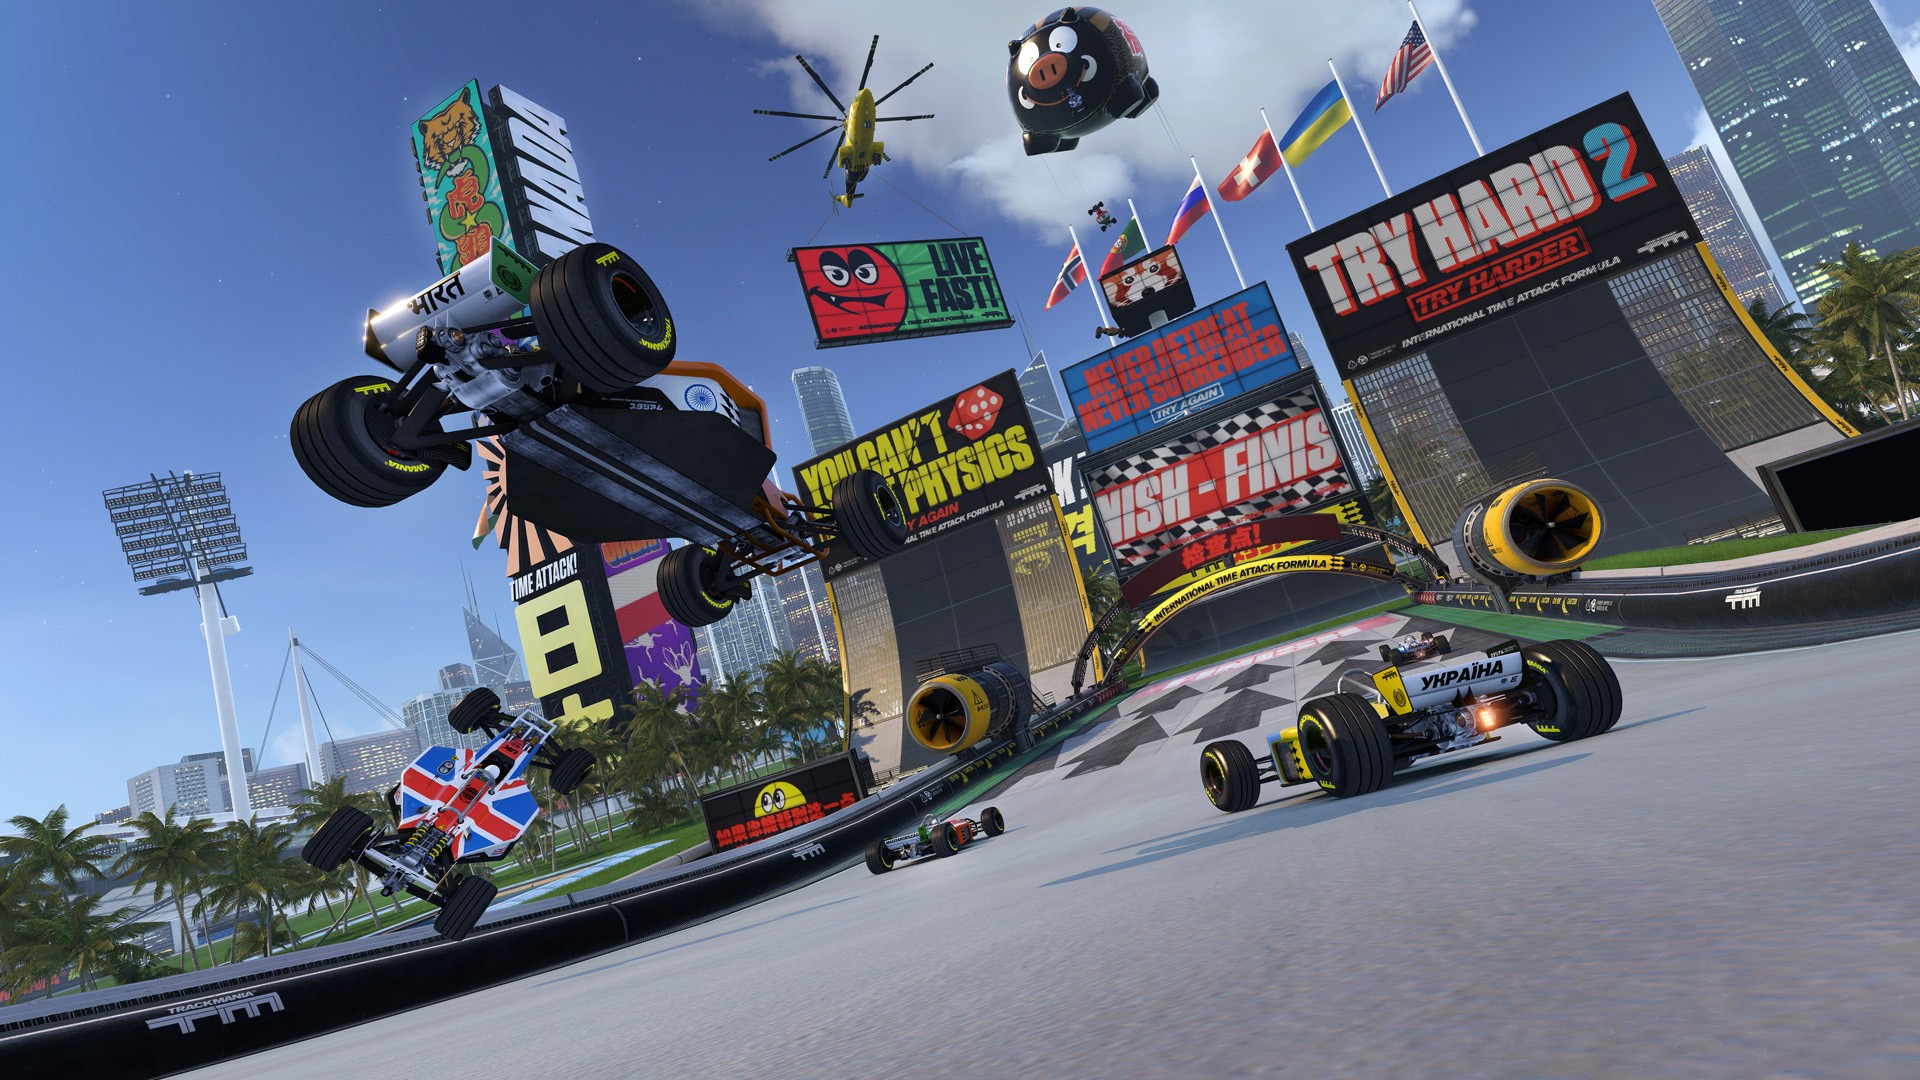 What's Hot                     4 ENVIRONMENTS, 4 KINDS OF GAMEPLAY                 PLAY TRACKMANIA TURBO IN VIRTUAL REALITY!                                                       Buy Now                                                                                                                                        News And Noteworthy                                                                                                    Media                                                                                                 You May Also Like                                      Connect With Ubisoft